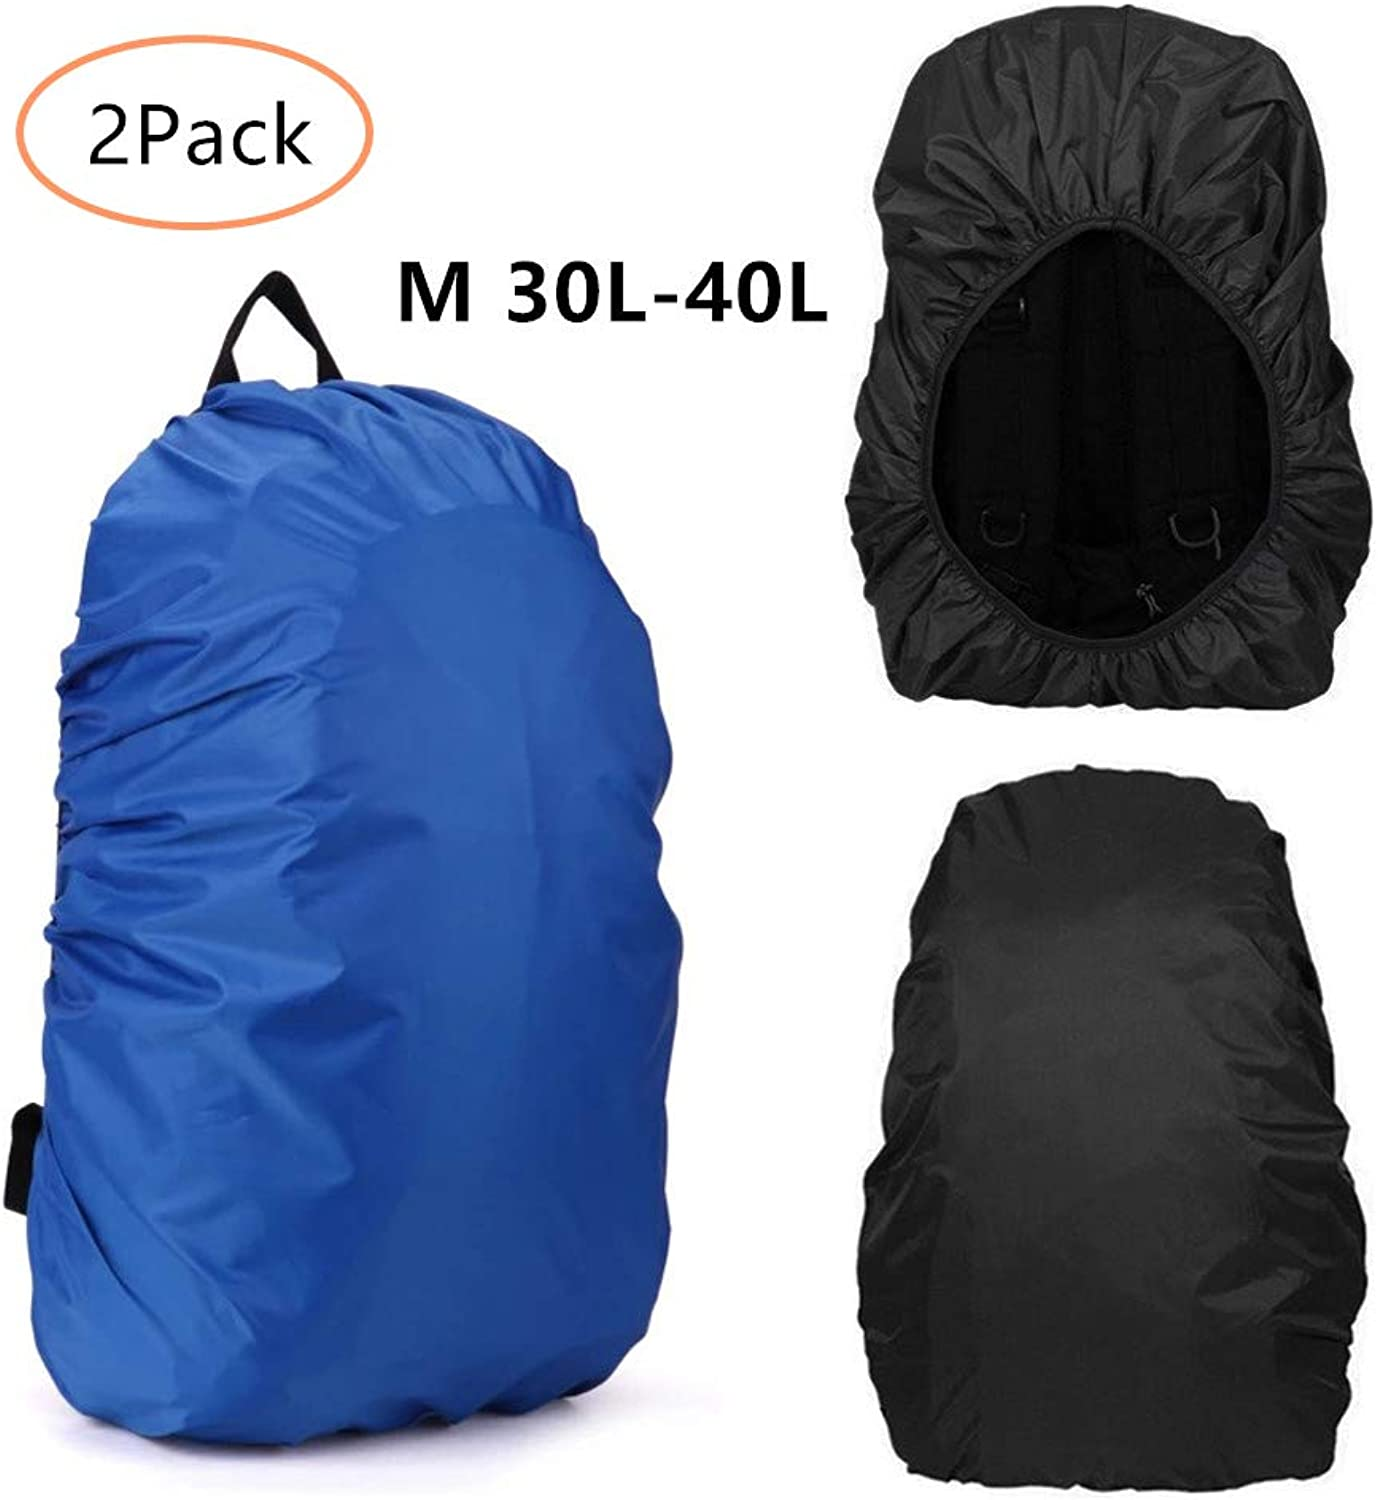 Leshiry Waterproof Backpack Rain Cover 30L40L 4555L, Elastic Adjustable Dustproof Rainproof Predector Pack Covers for Hiking Camping Cycling Traveling, 2Pack